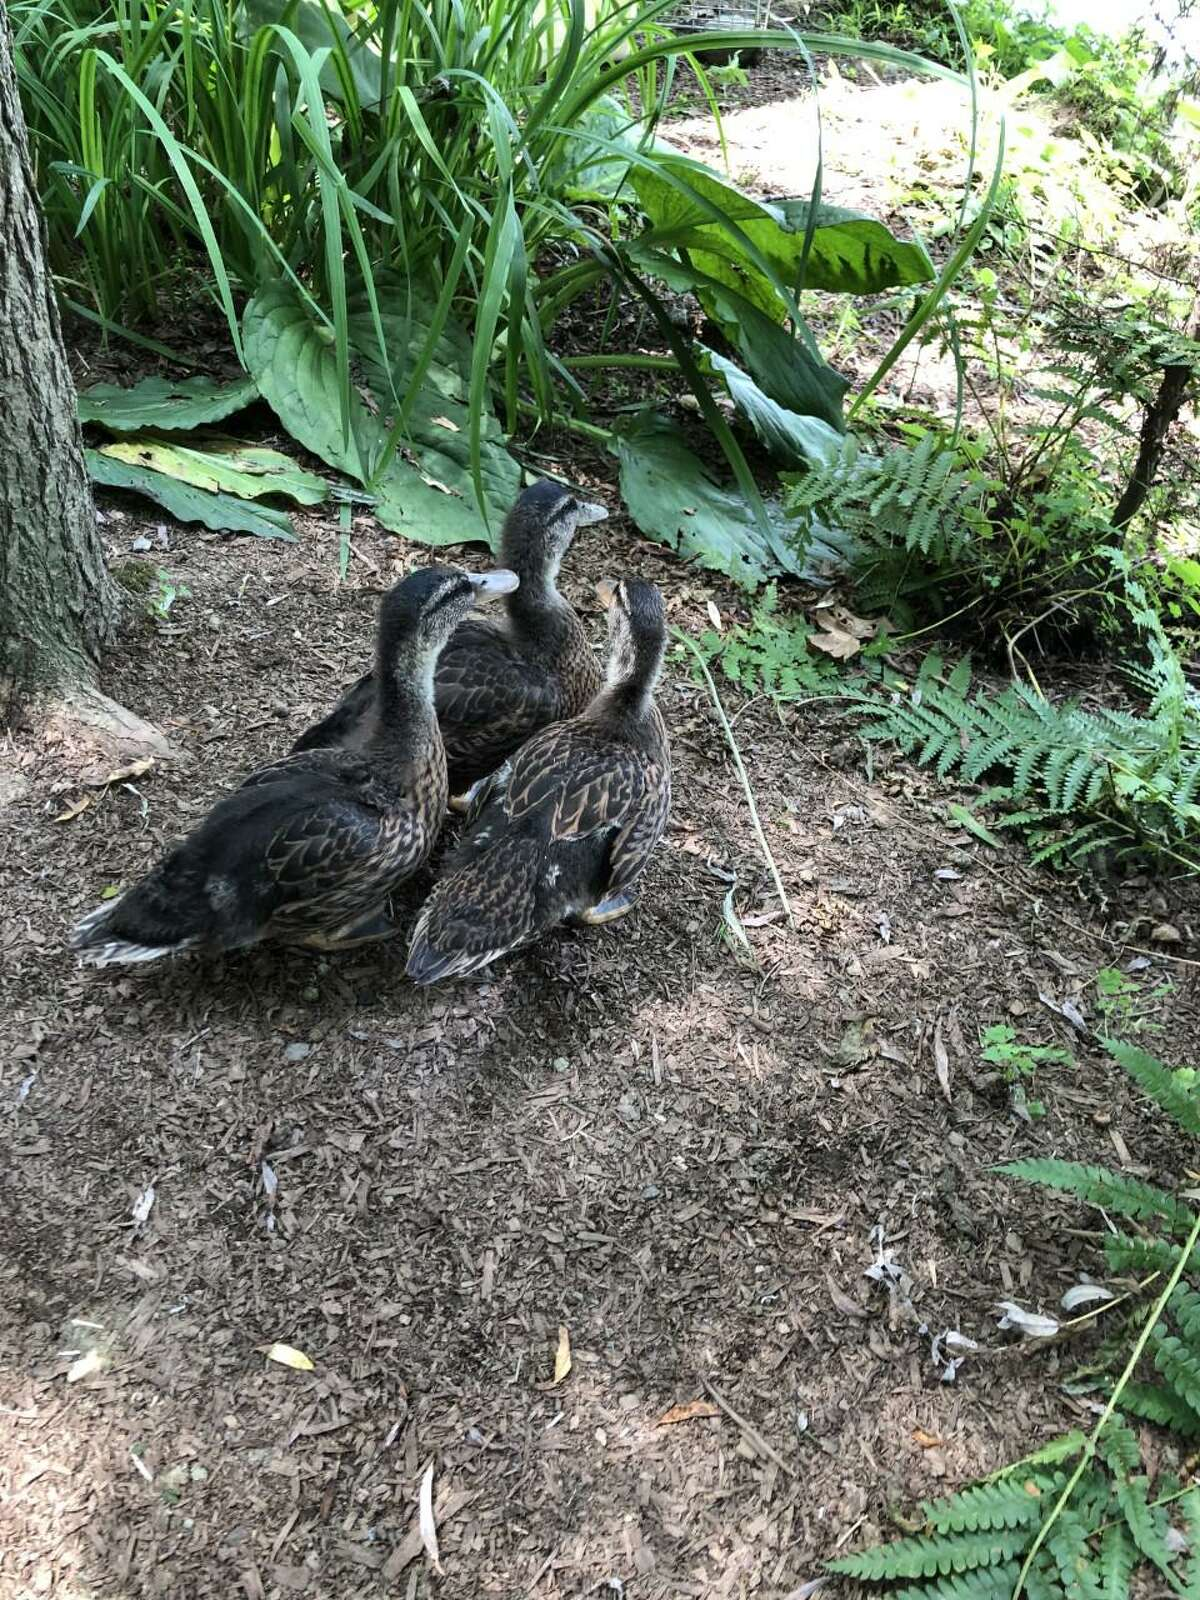 The way these ducks interacted with people convinced New Canaan Animal Control that they had been raised by someone then dumped in the wild.